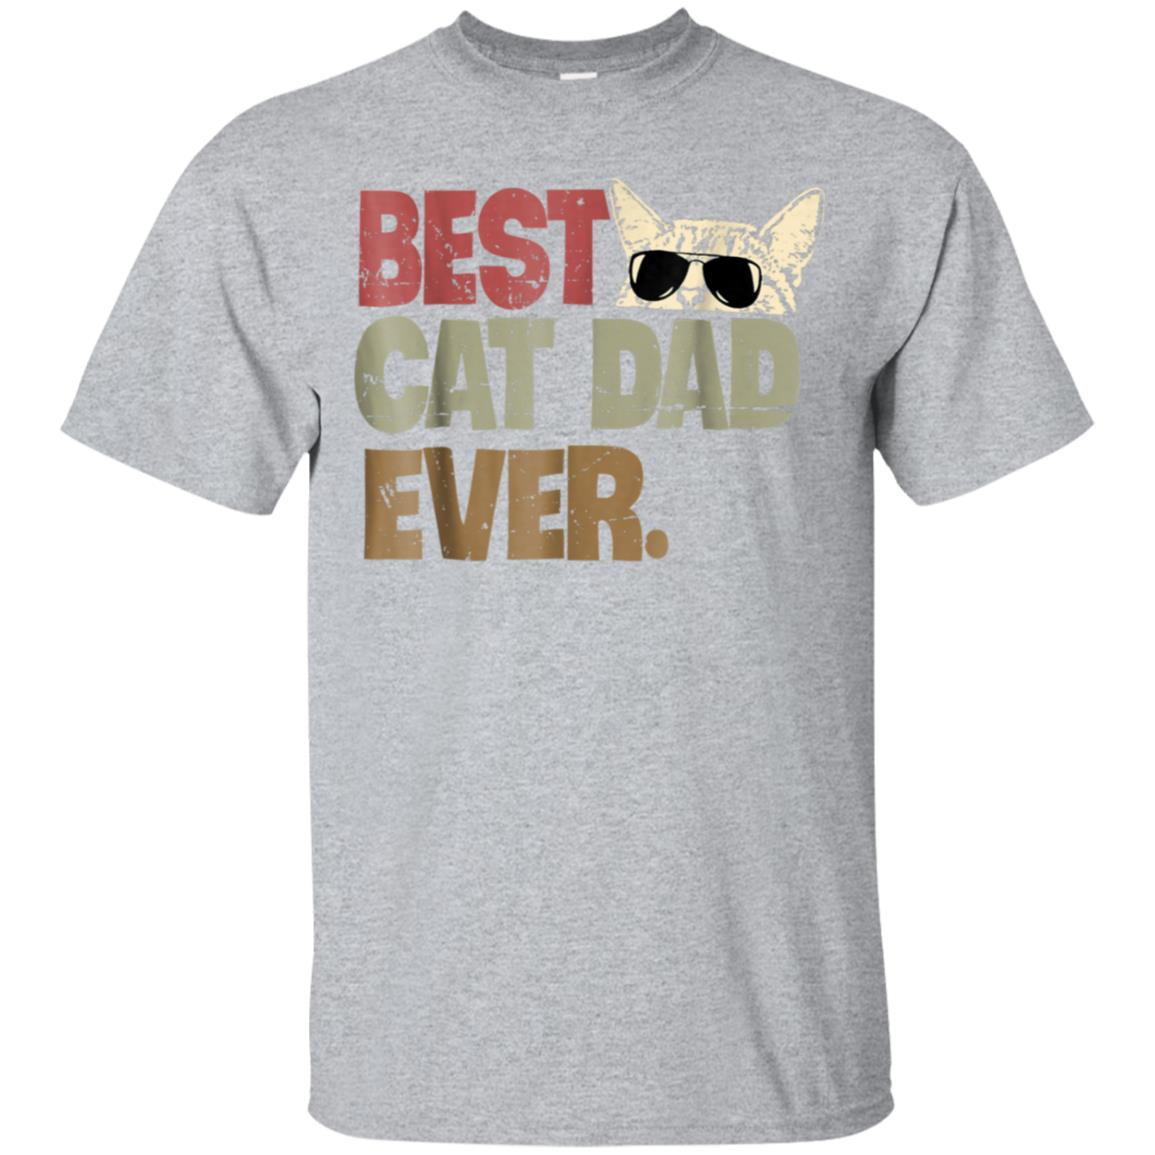 Best Cat Dad Ever T-Shirt Cat Daddy Gift Shirts 99promocode